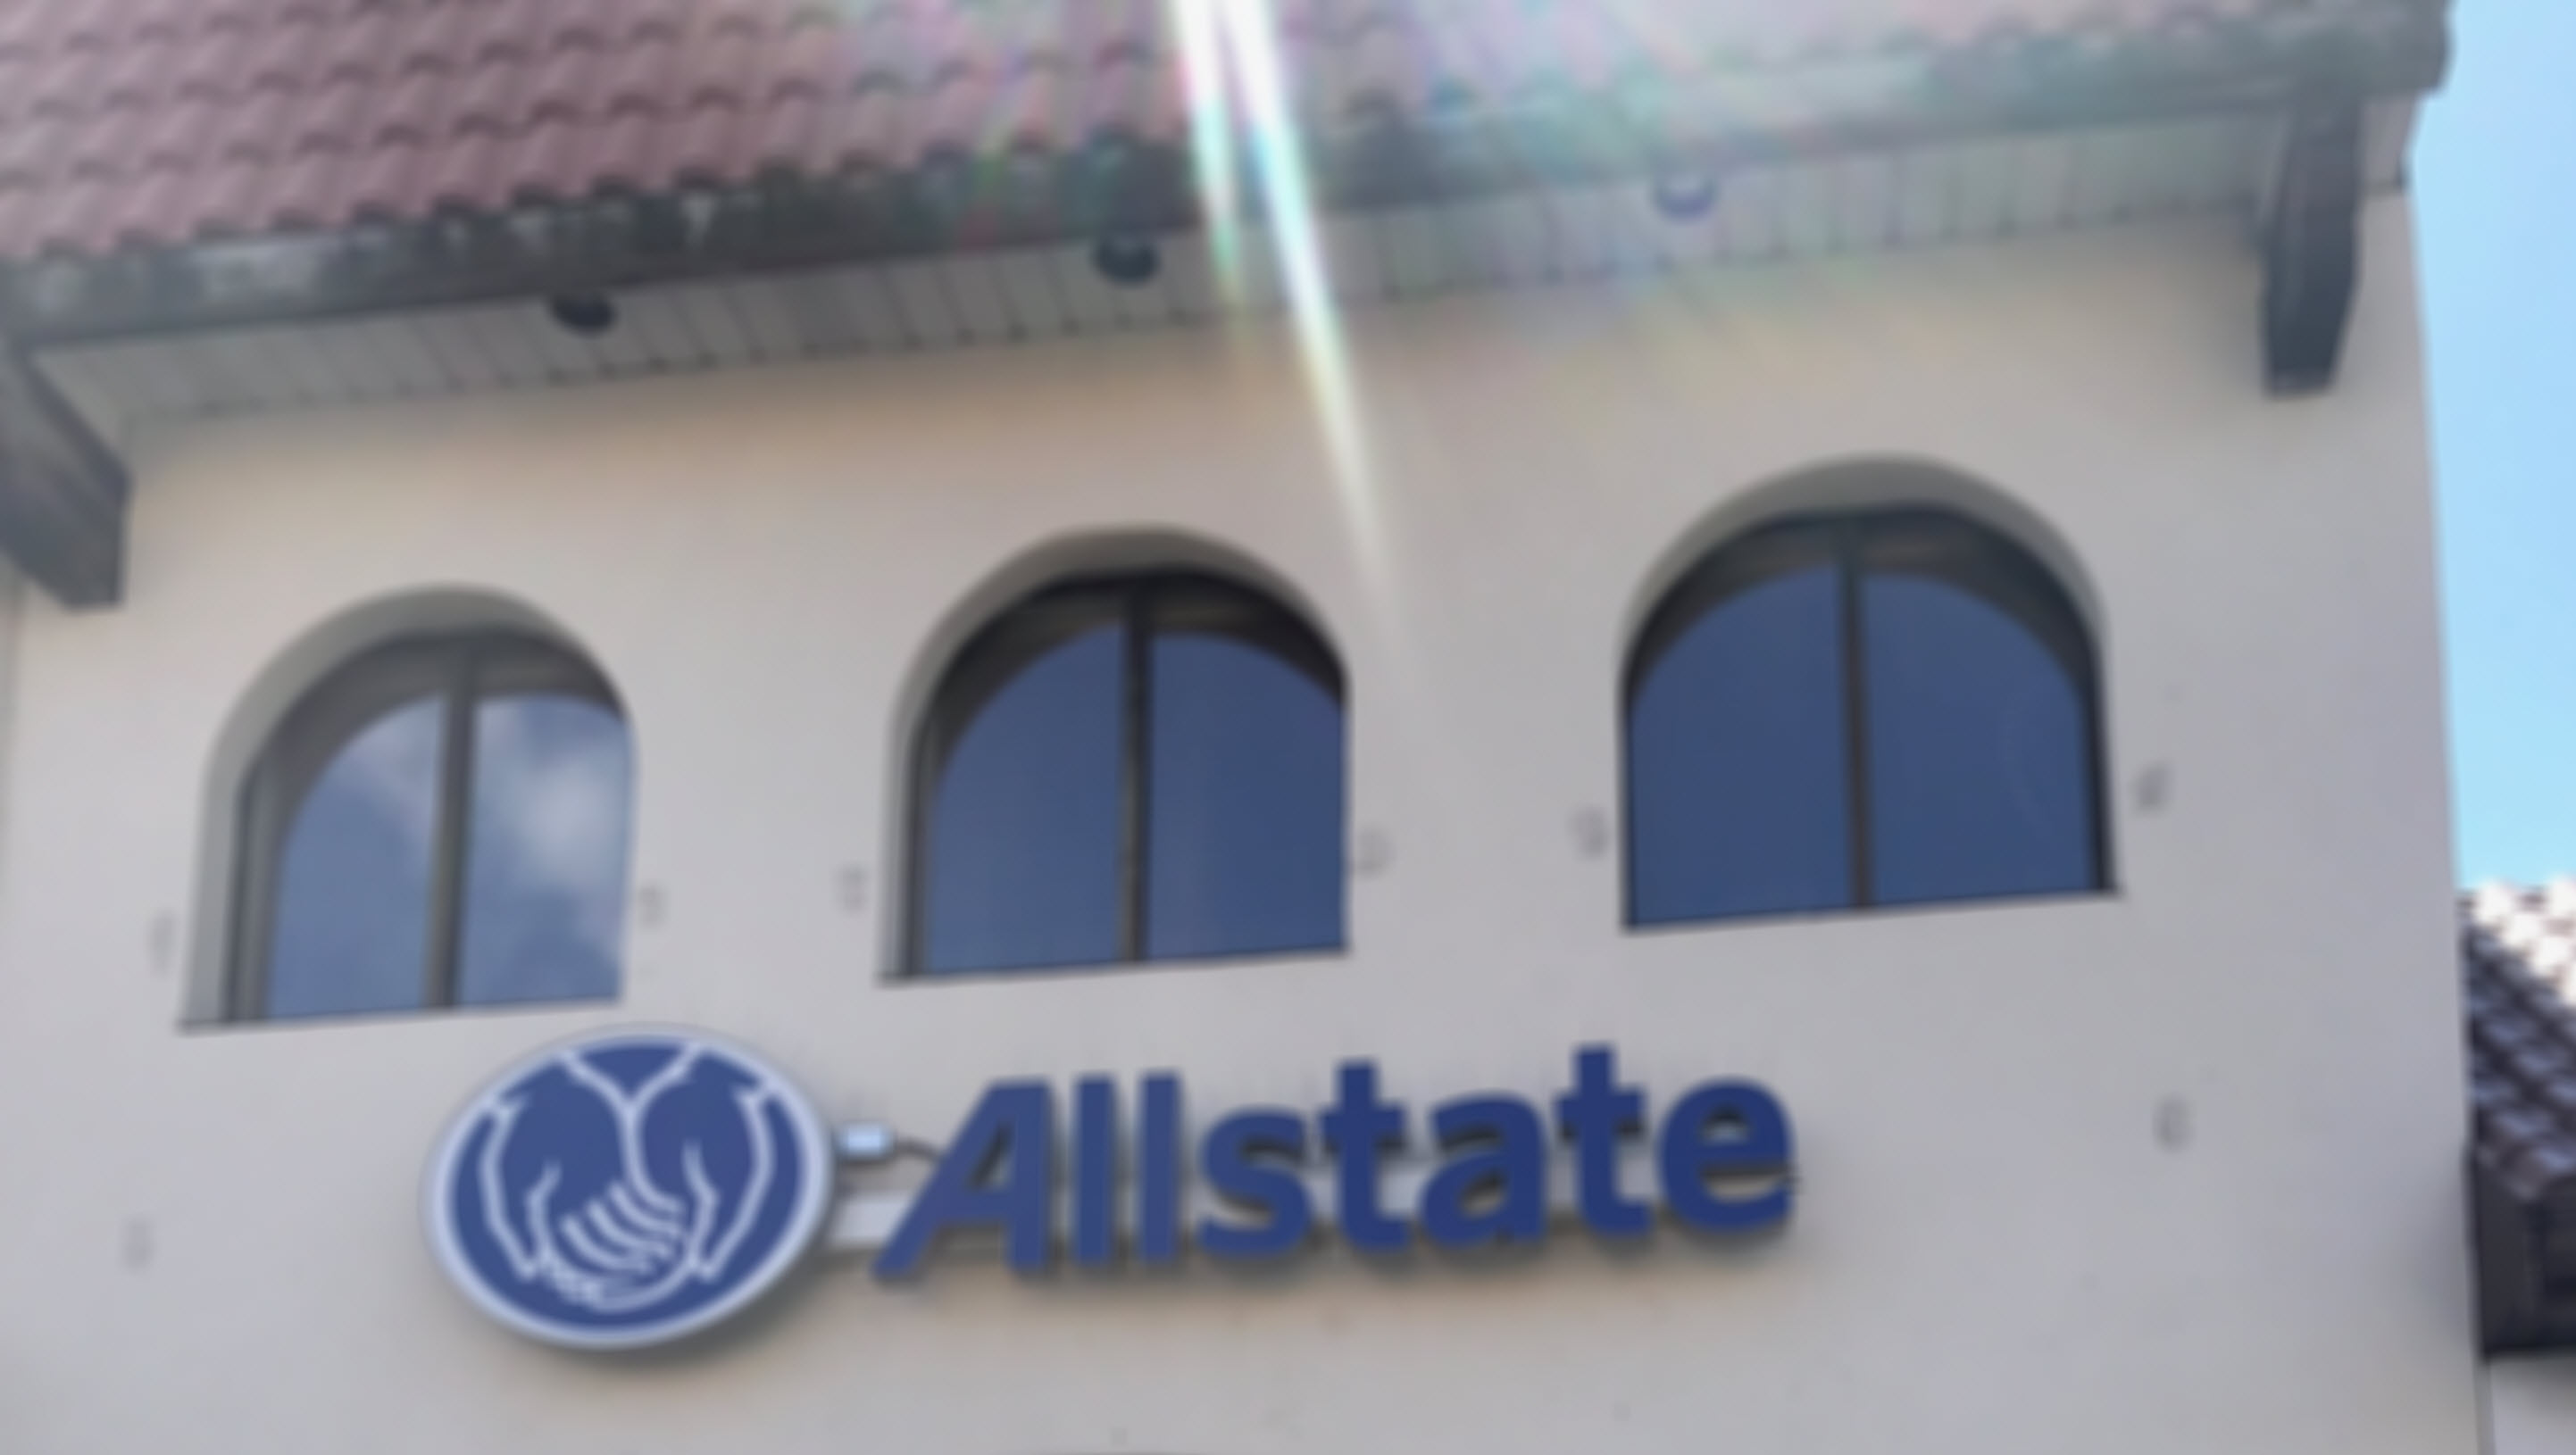 Life home car insurance quotes in long beach ny for Allstate motor club hotel discounts